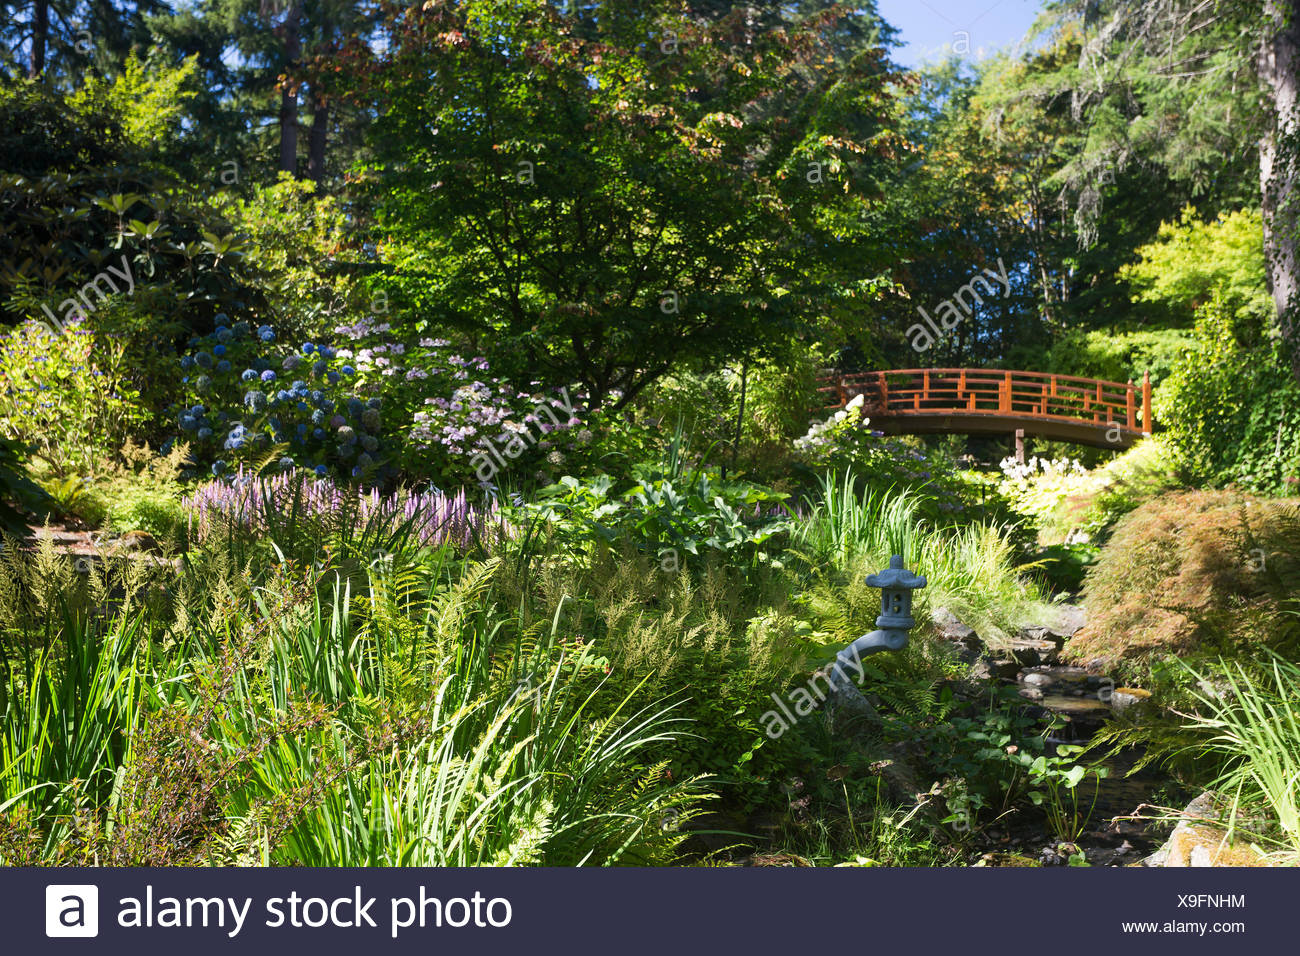 Located 12 kms north of downtown Victoria, the Horticultural Centre of the Pacific welcomes visitors to it's public gardens, cared for by volunteers, staff and students.  Victoria, Vancouver Island, British Columbia, Canada Stock Photo